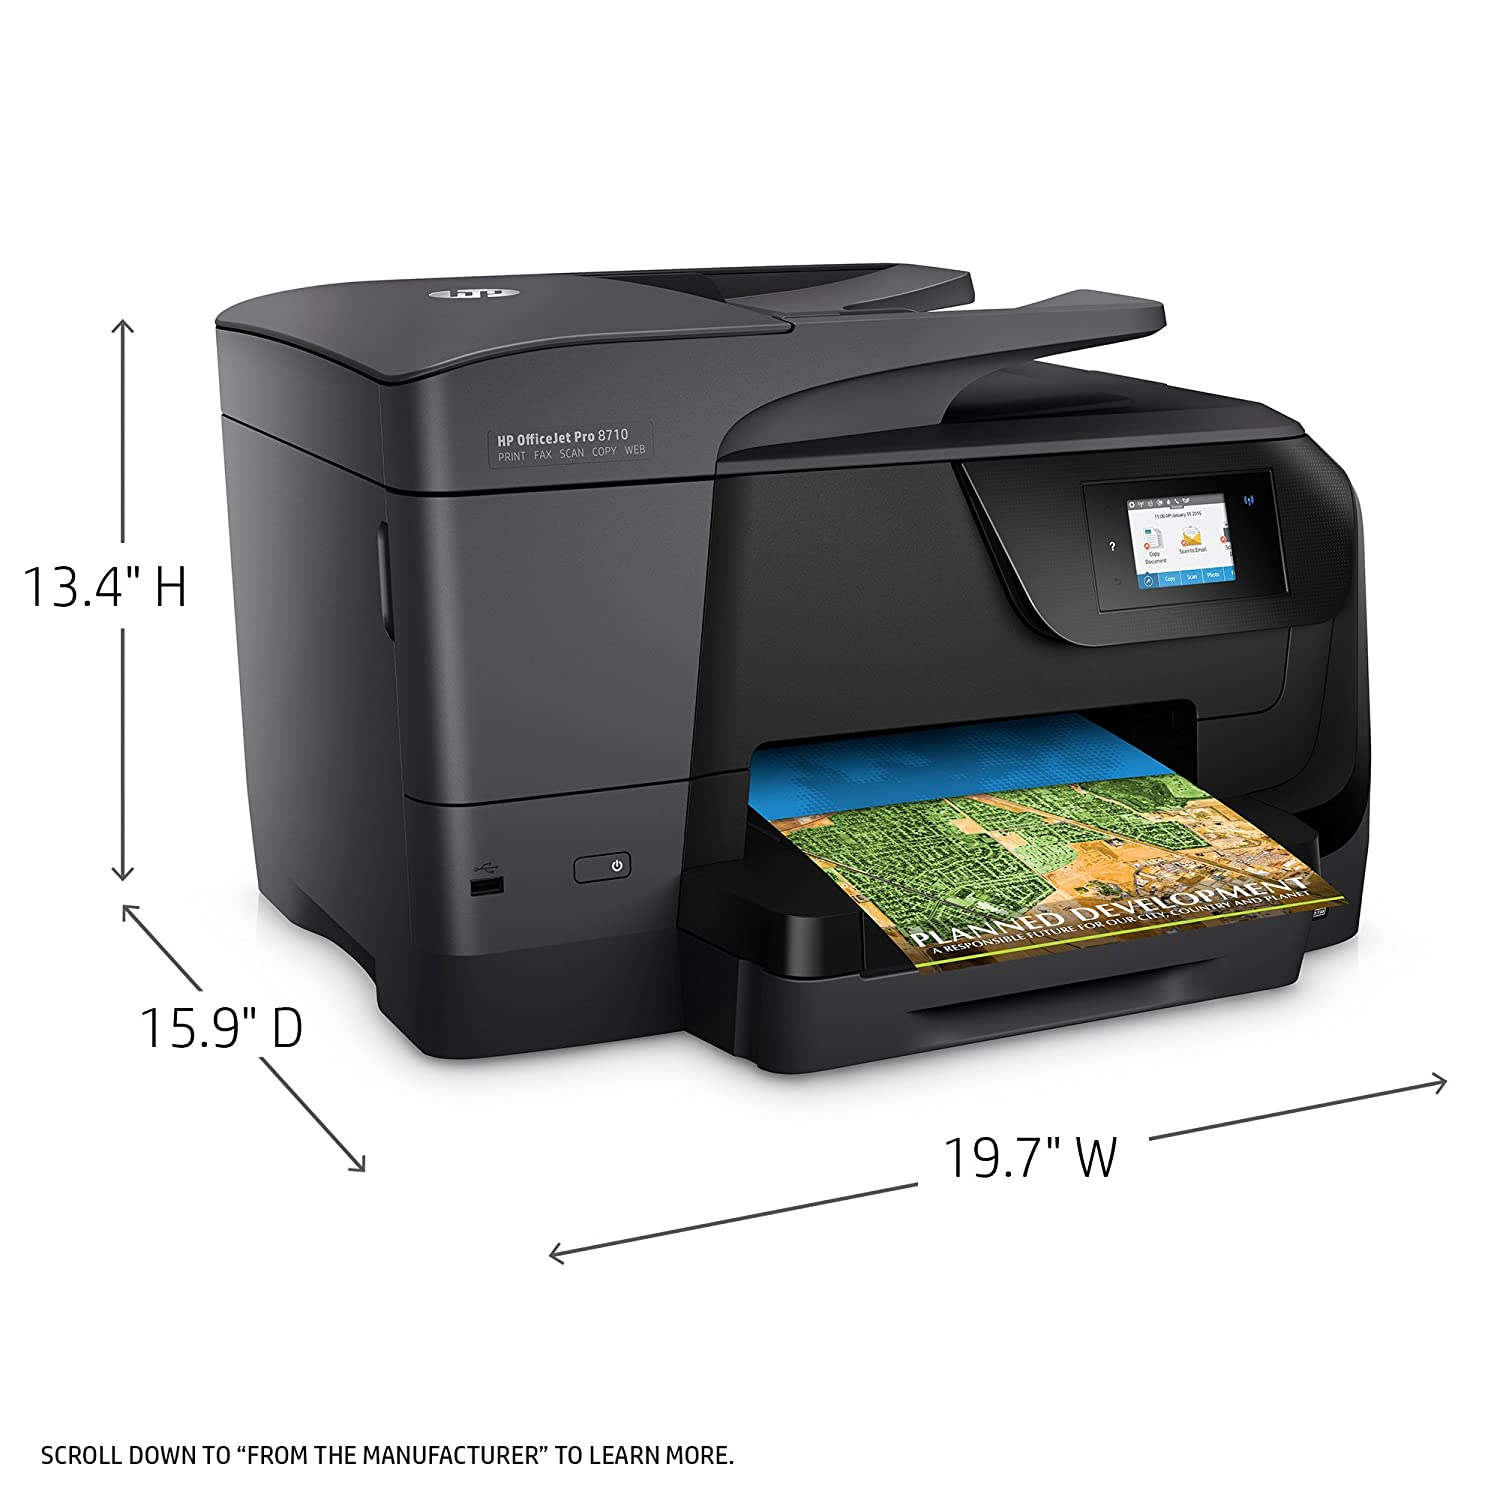 Color printing inkjet vs laser - Amazon Com Hp Officejet Pro 8710 Wireless All In One Photo Printer With Mobile Printing Instant Ink Ready M9l66a Electronics